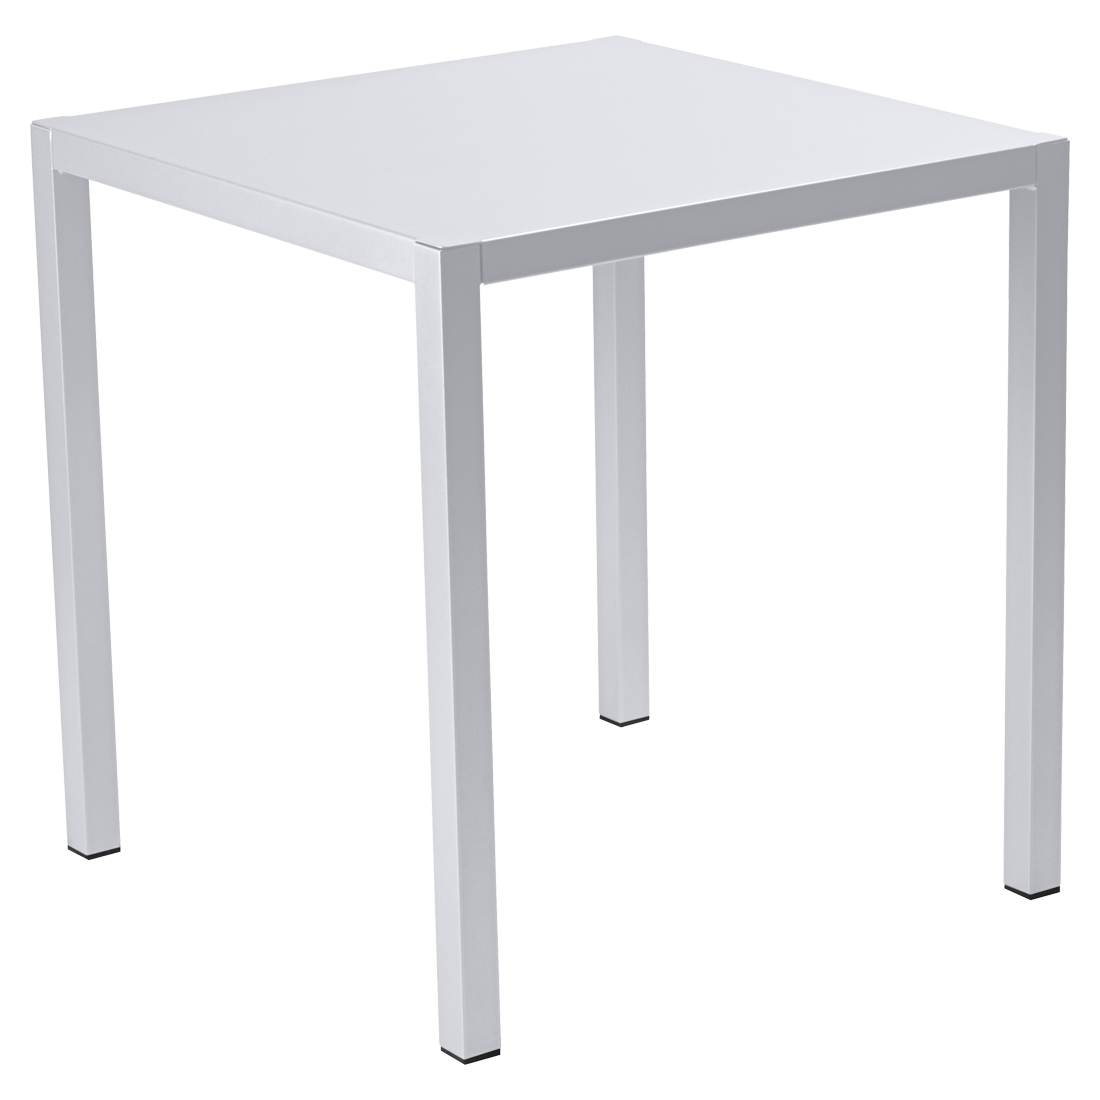 table design, table putman, table de jardin, table metal, table banche